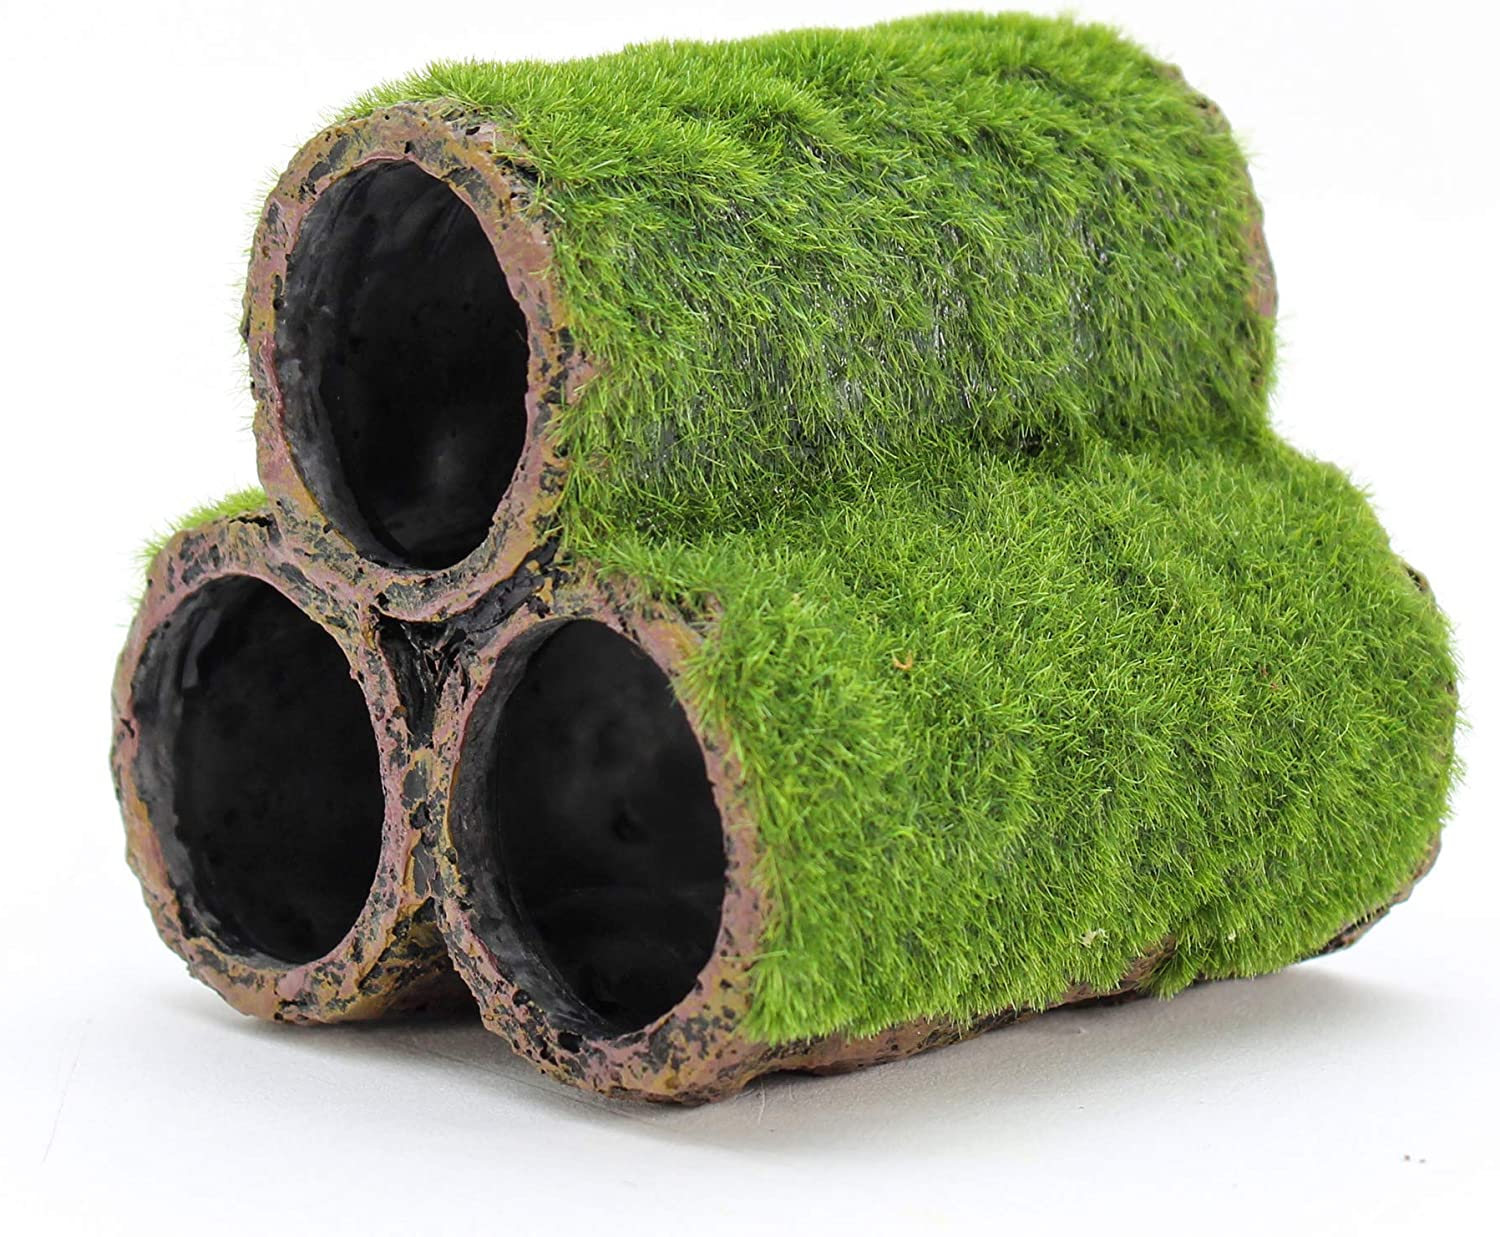 Penn-Plax Hideaway Pipes Aquarium Decoration Realistic Look with Green Moss Like Texture